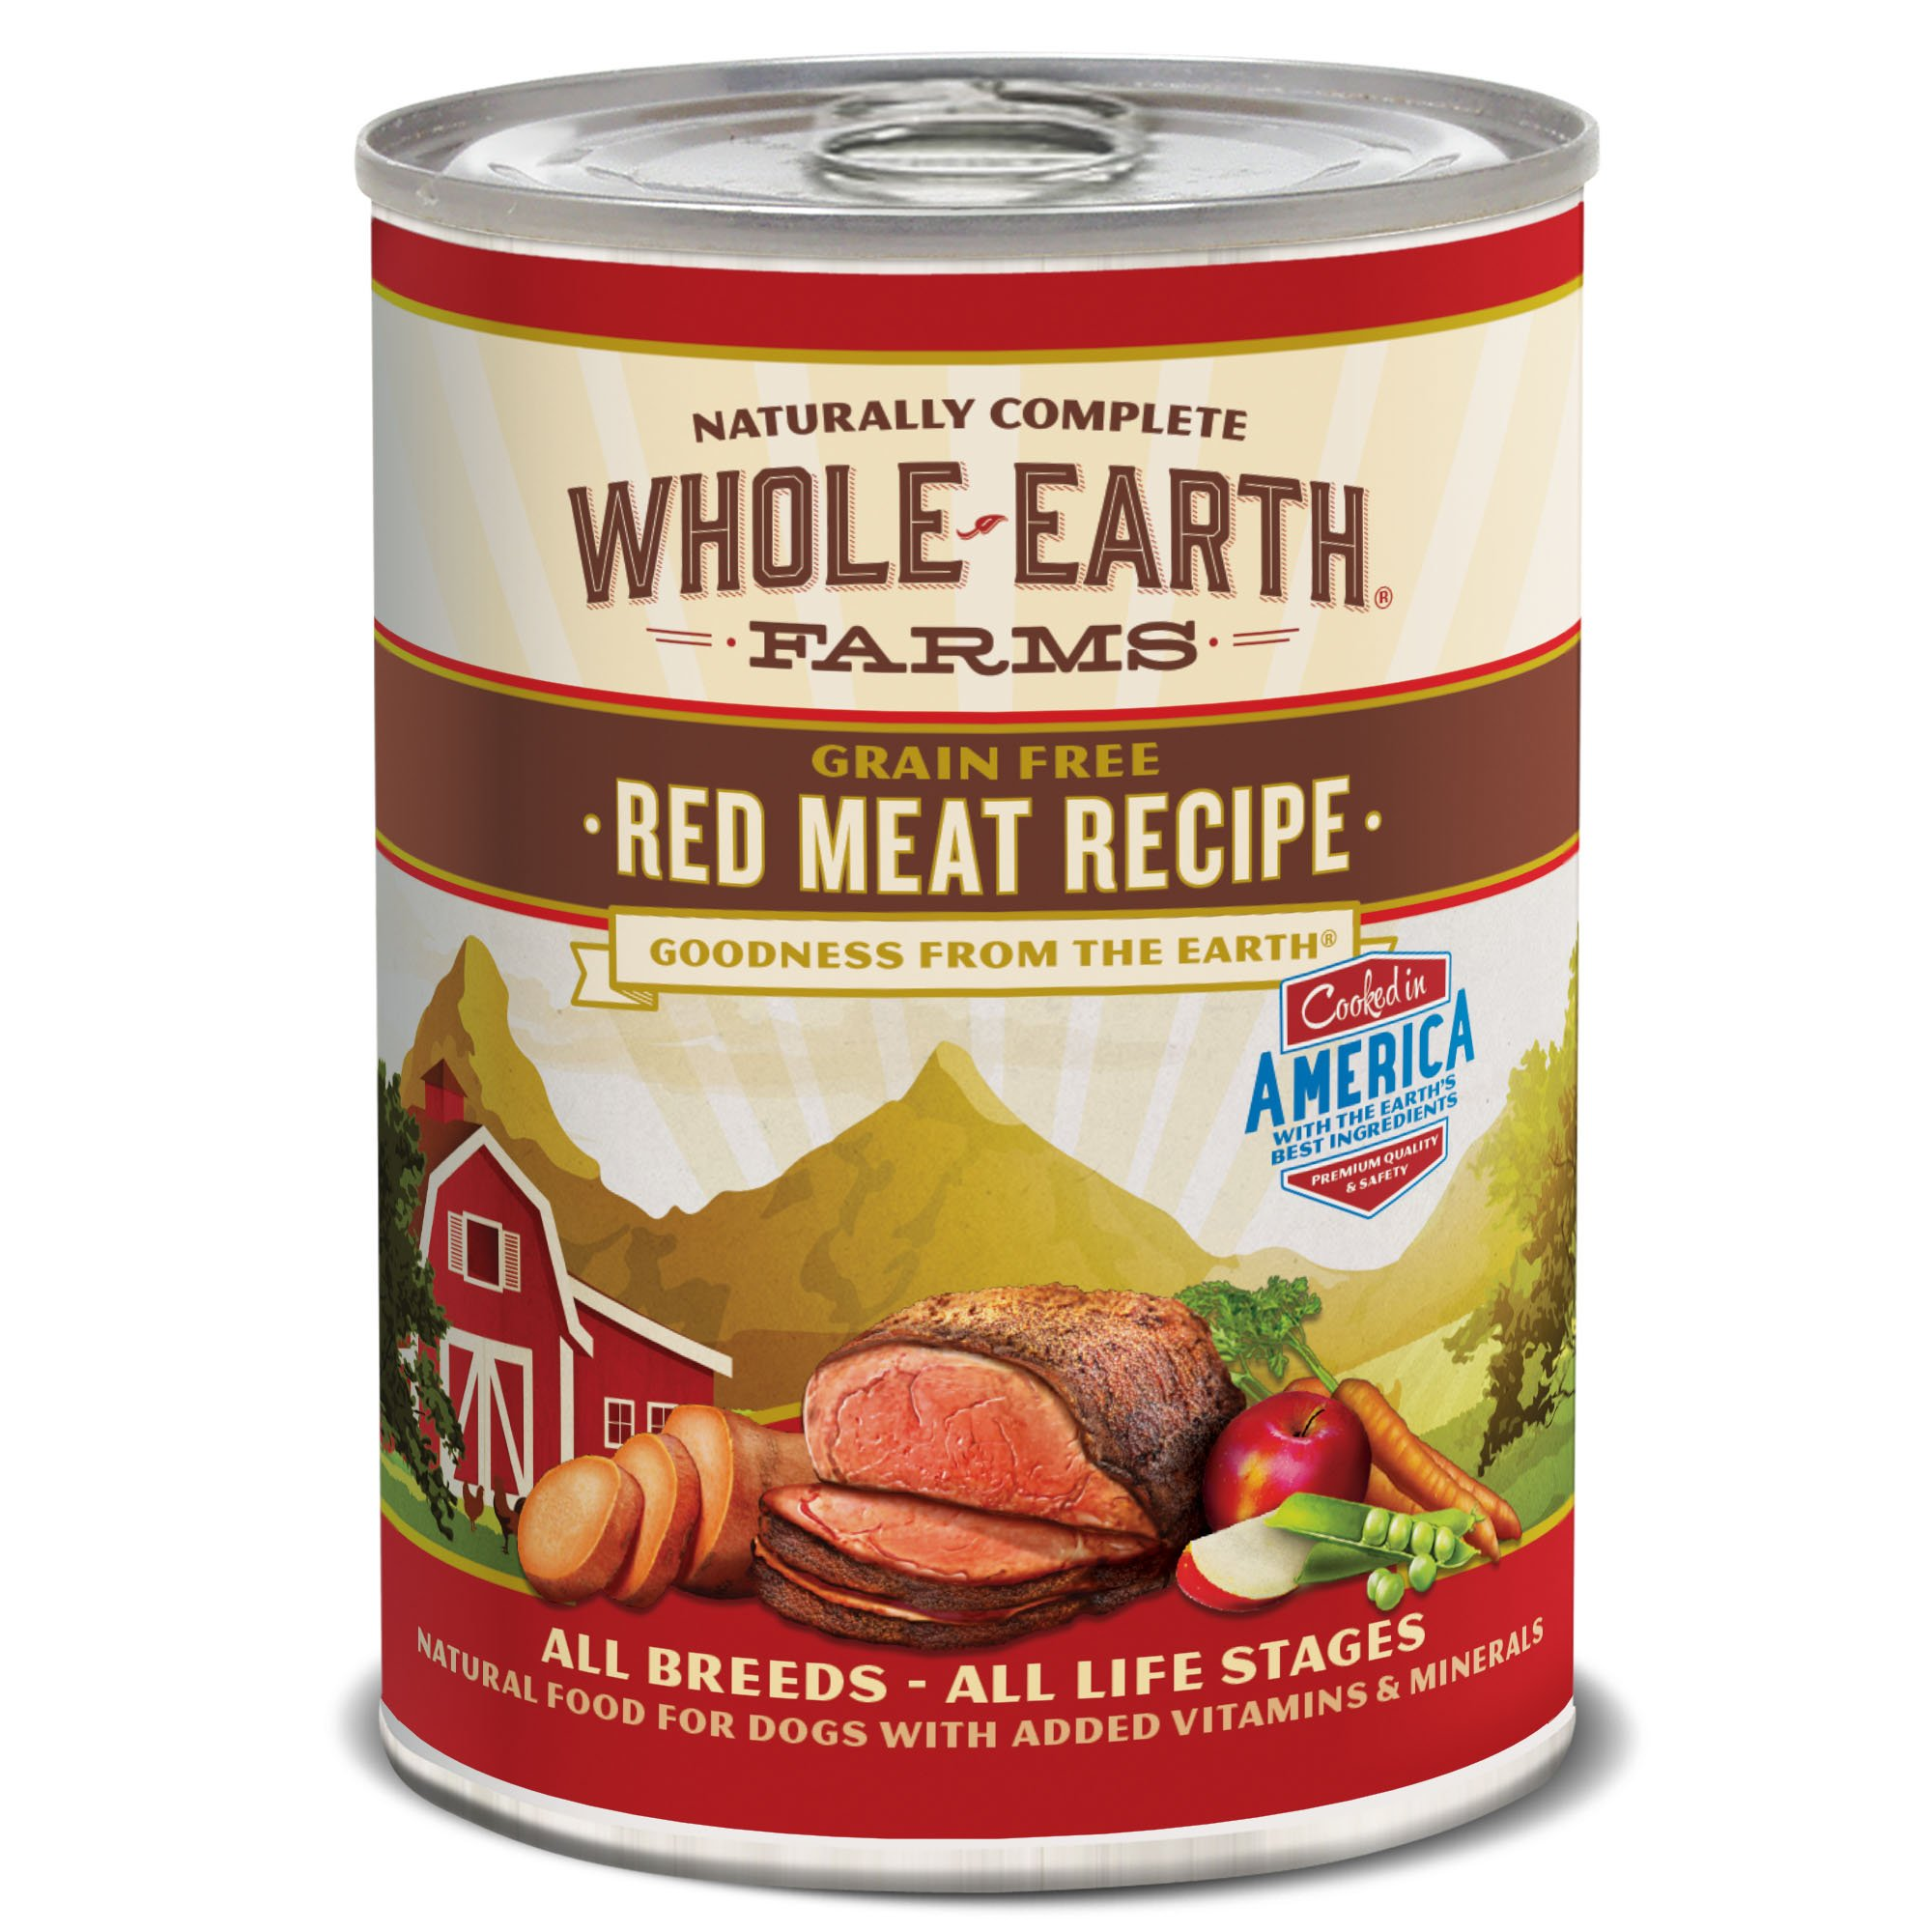 Whole Earth Farms Red Meat Recipe, 12.7-Ounce, Pack Of 12 by Whole Earth Farms